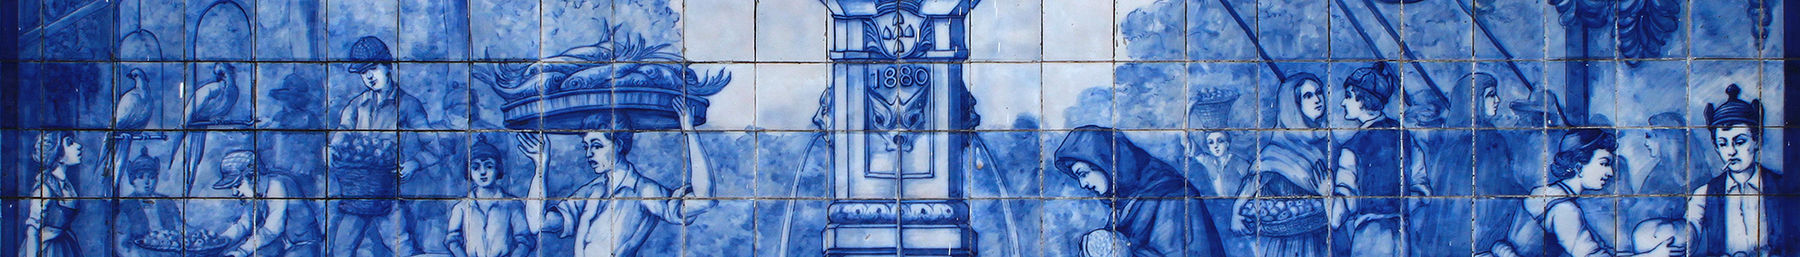 Ceramic tiles (Azulejo) at the wall of the Mercado dos Lavradores, Funchal